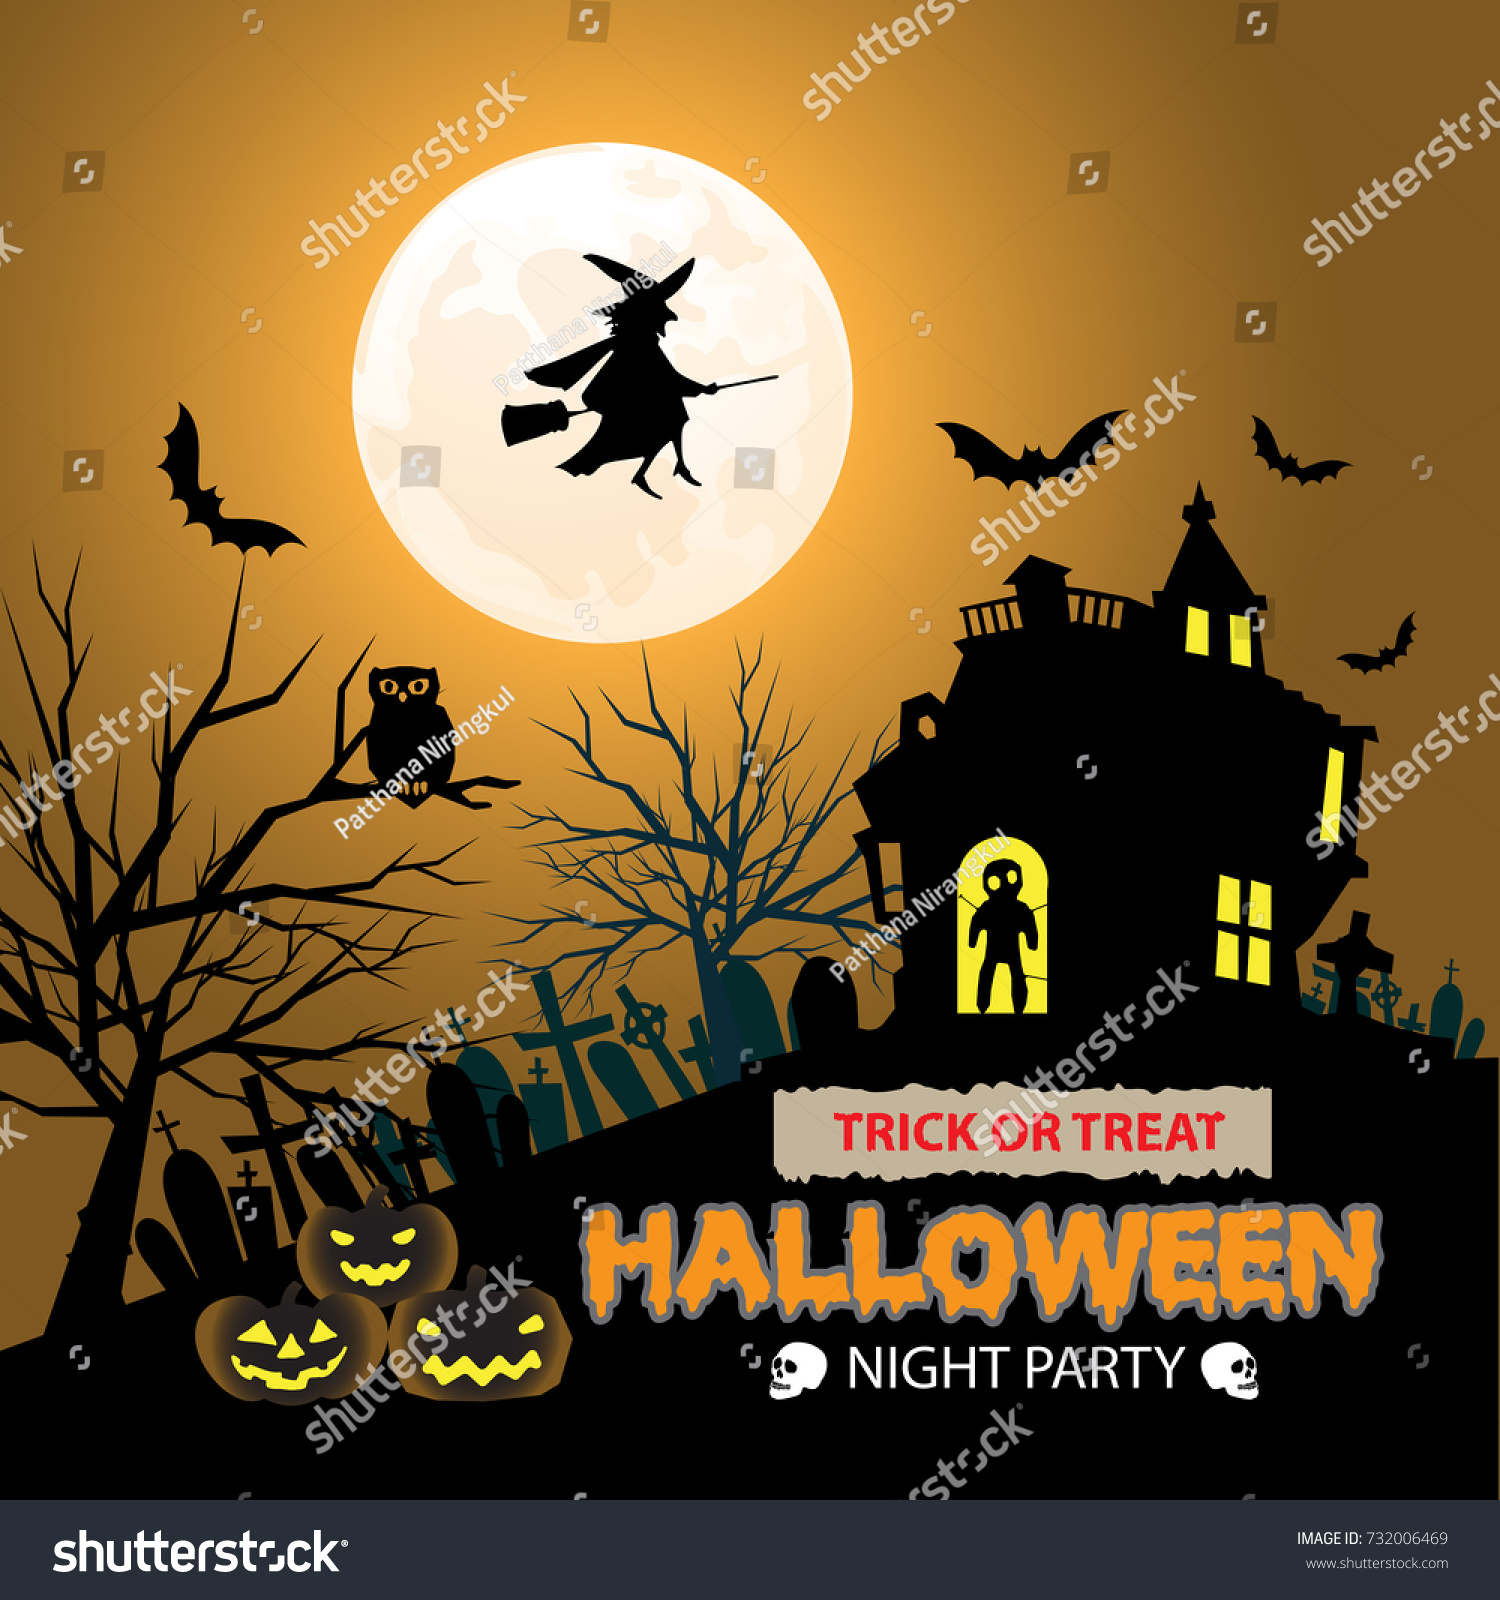 Happy Halloween Night Party Orange Moon Design For Holiday Festival Vector  Illustration.